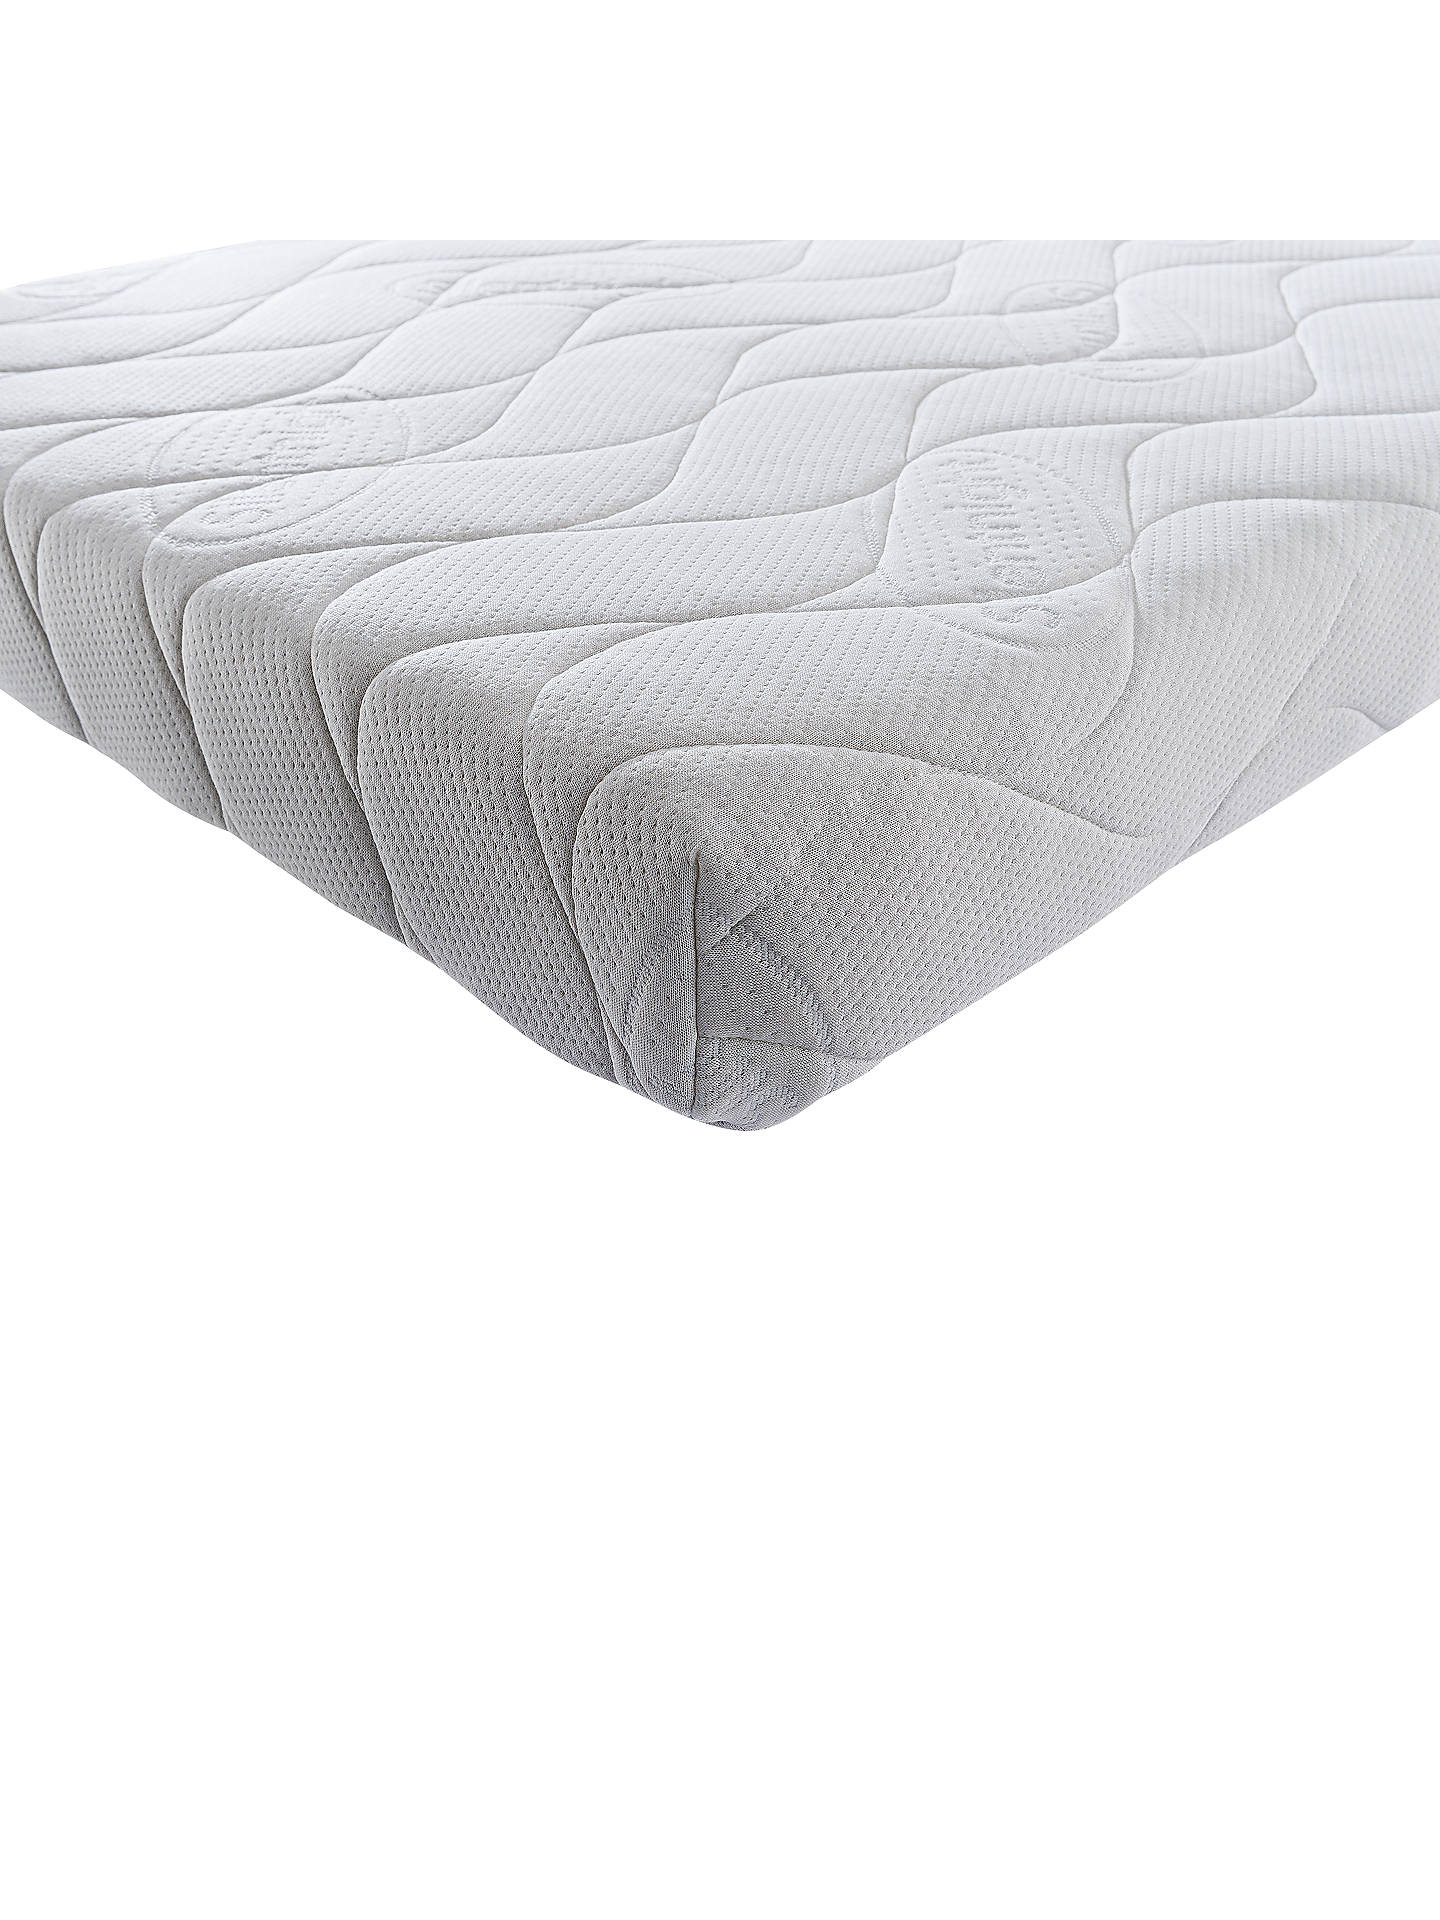 Memory Wool Baby Cotbed Mattress